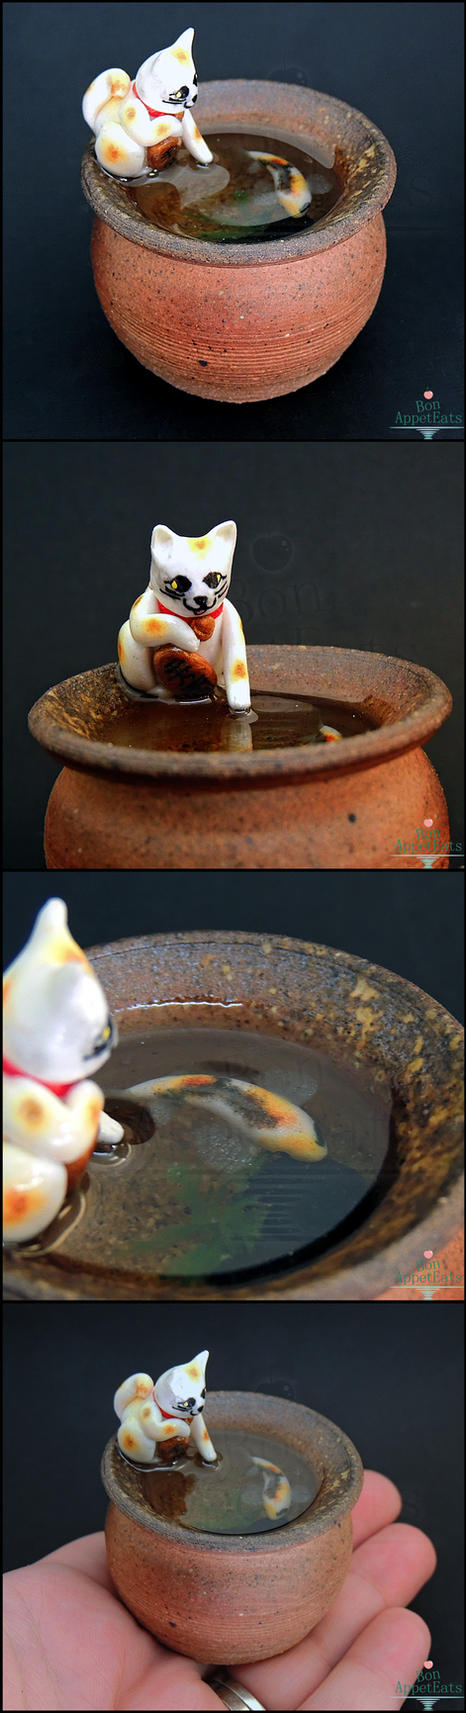 Commission: Maneki Neko Koi Pond Pottery by Bon-AppetEats